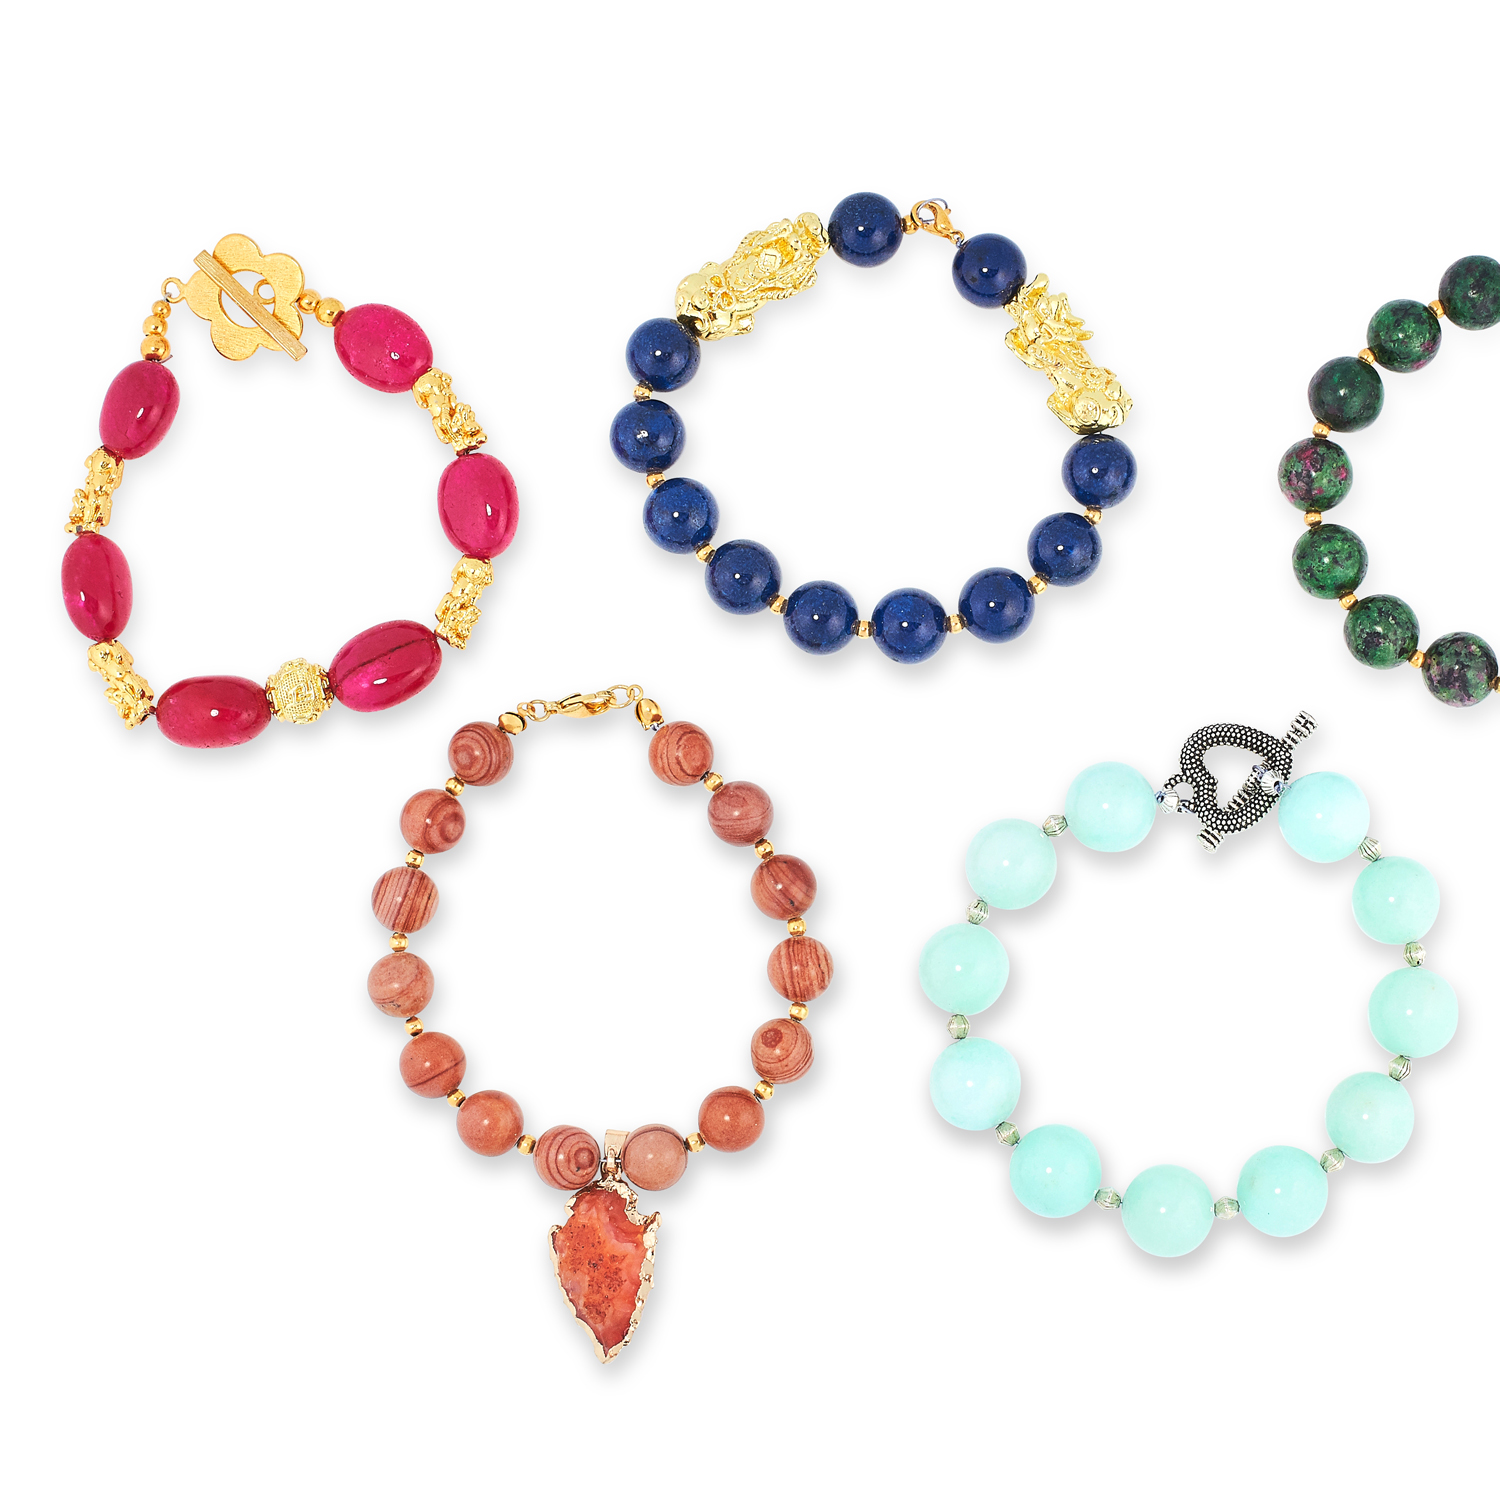 A MIXED LOT OF GEMSTONE BEAD NECKLACES, EARRINGS AND BRACELETS including jade, emerald, lapis - Image 12 of 13